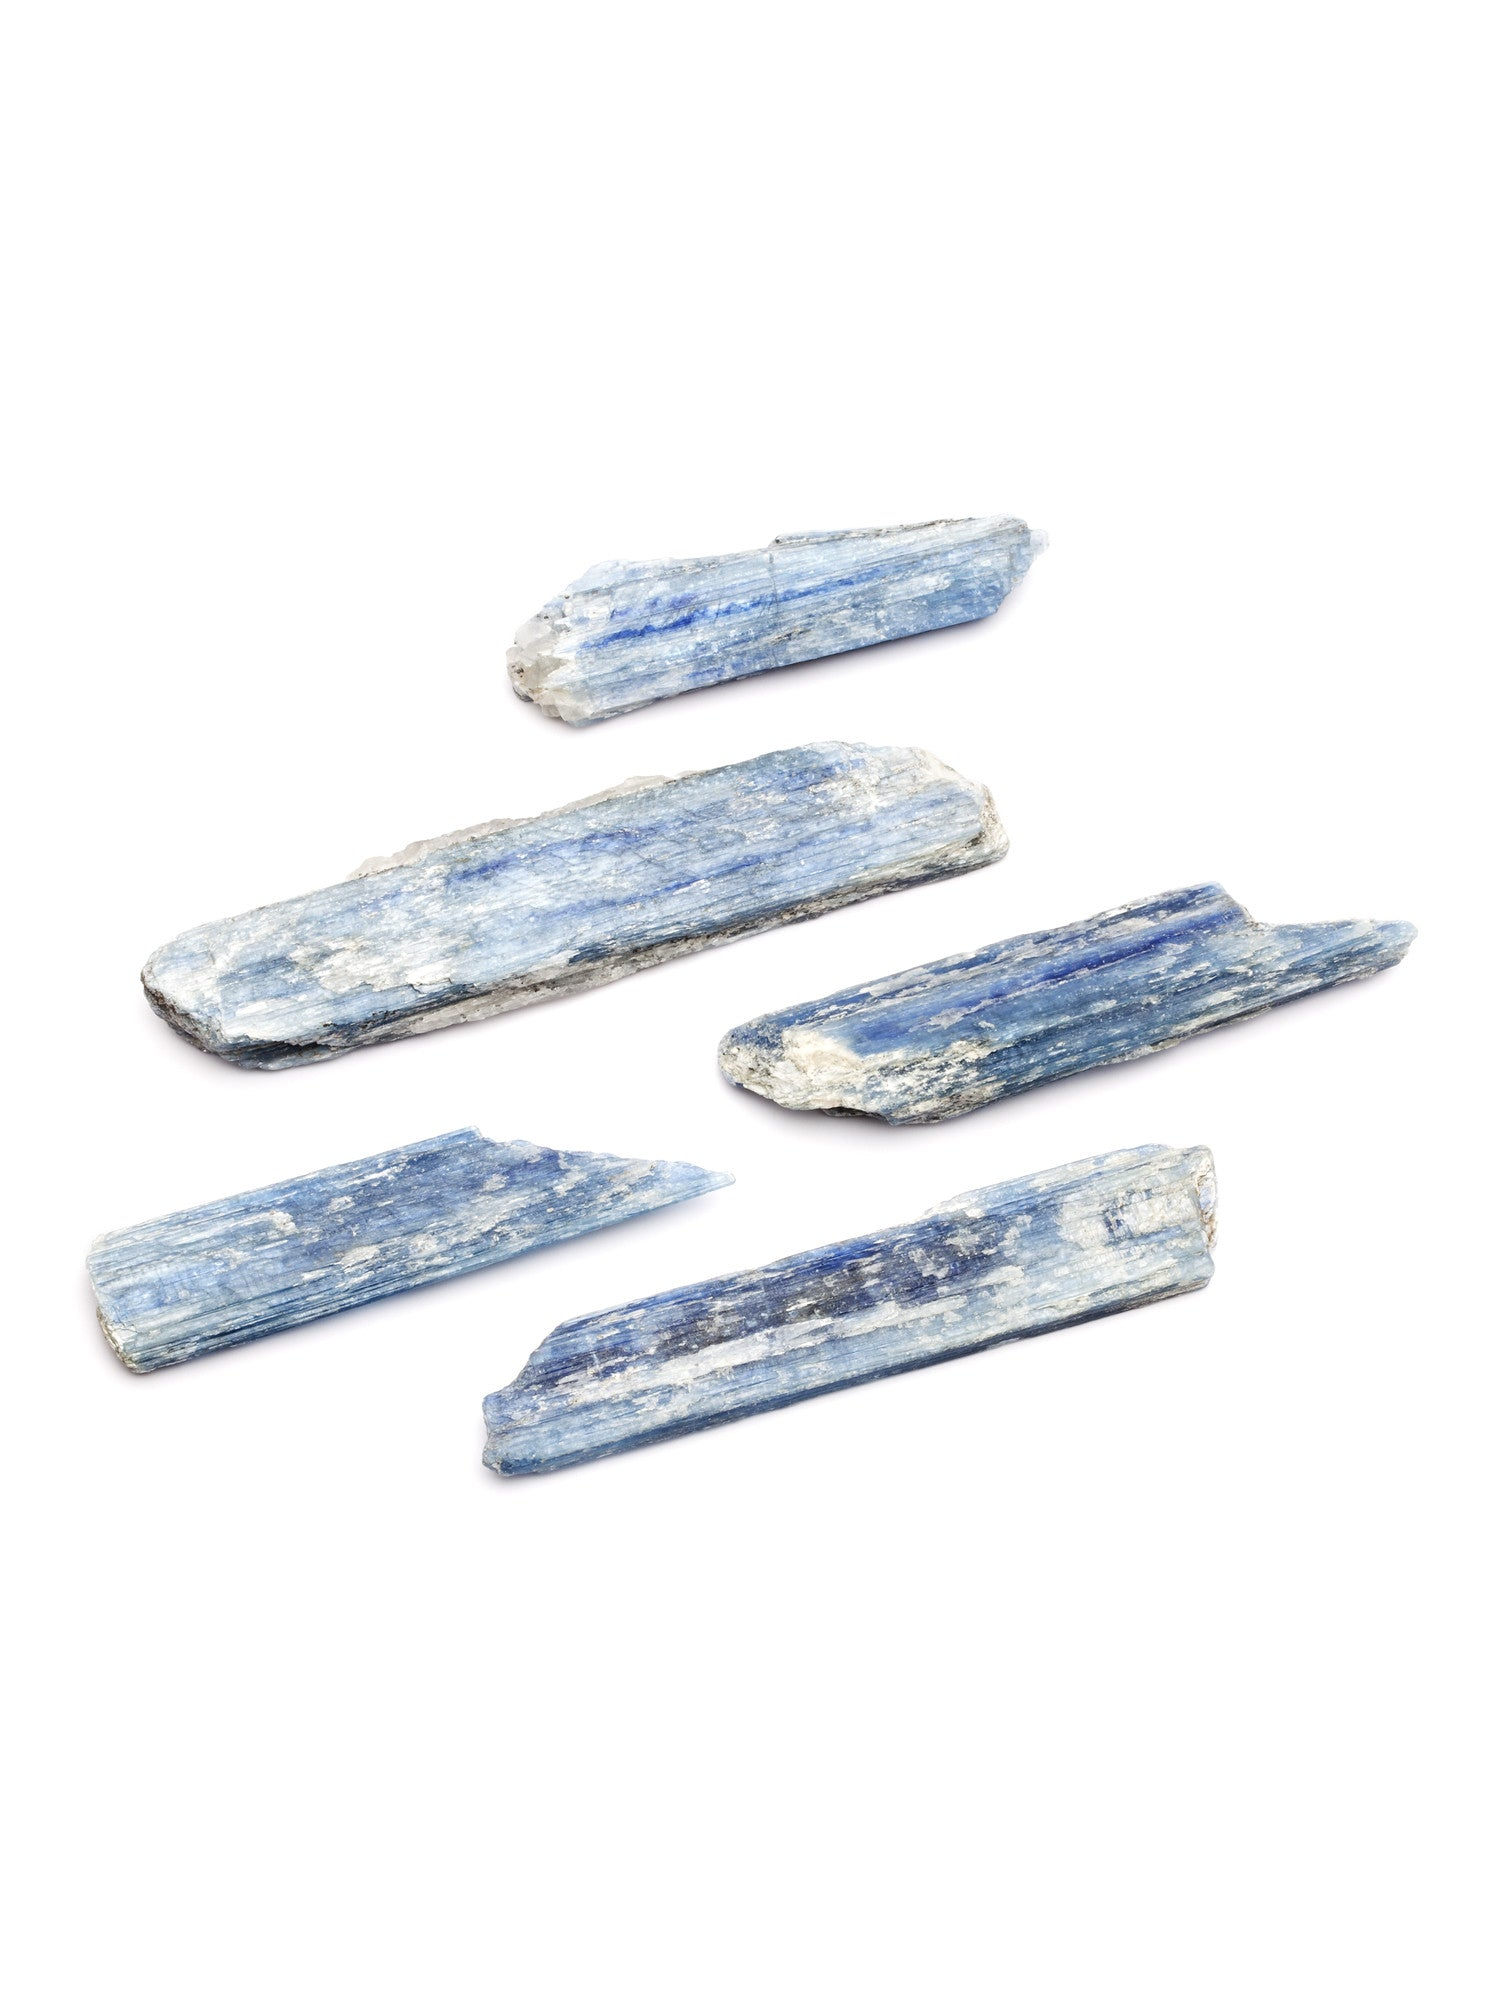 Raw Blue Kyanite (small)